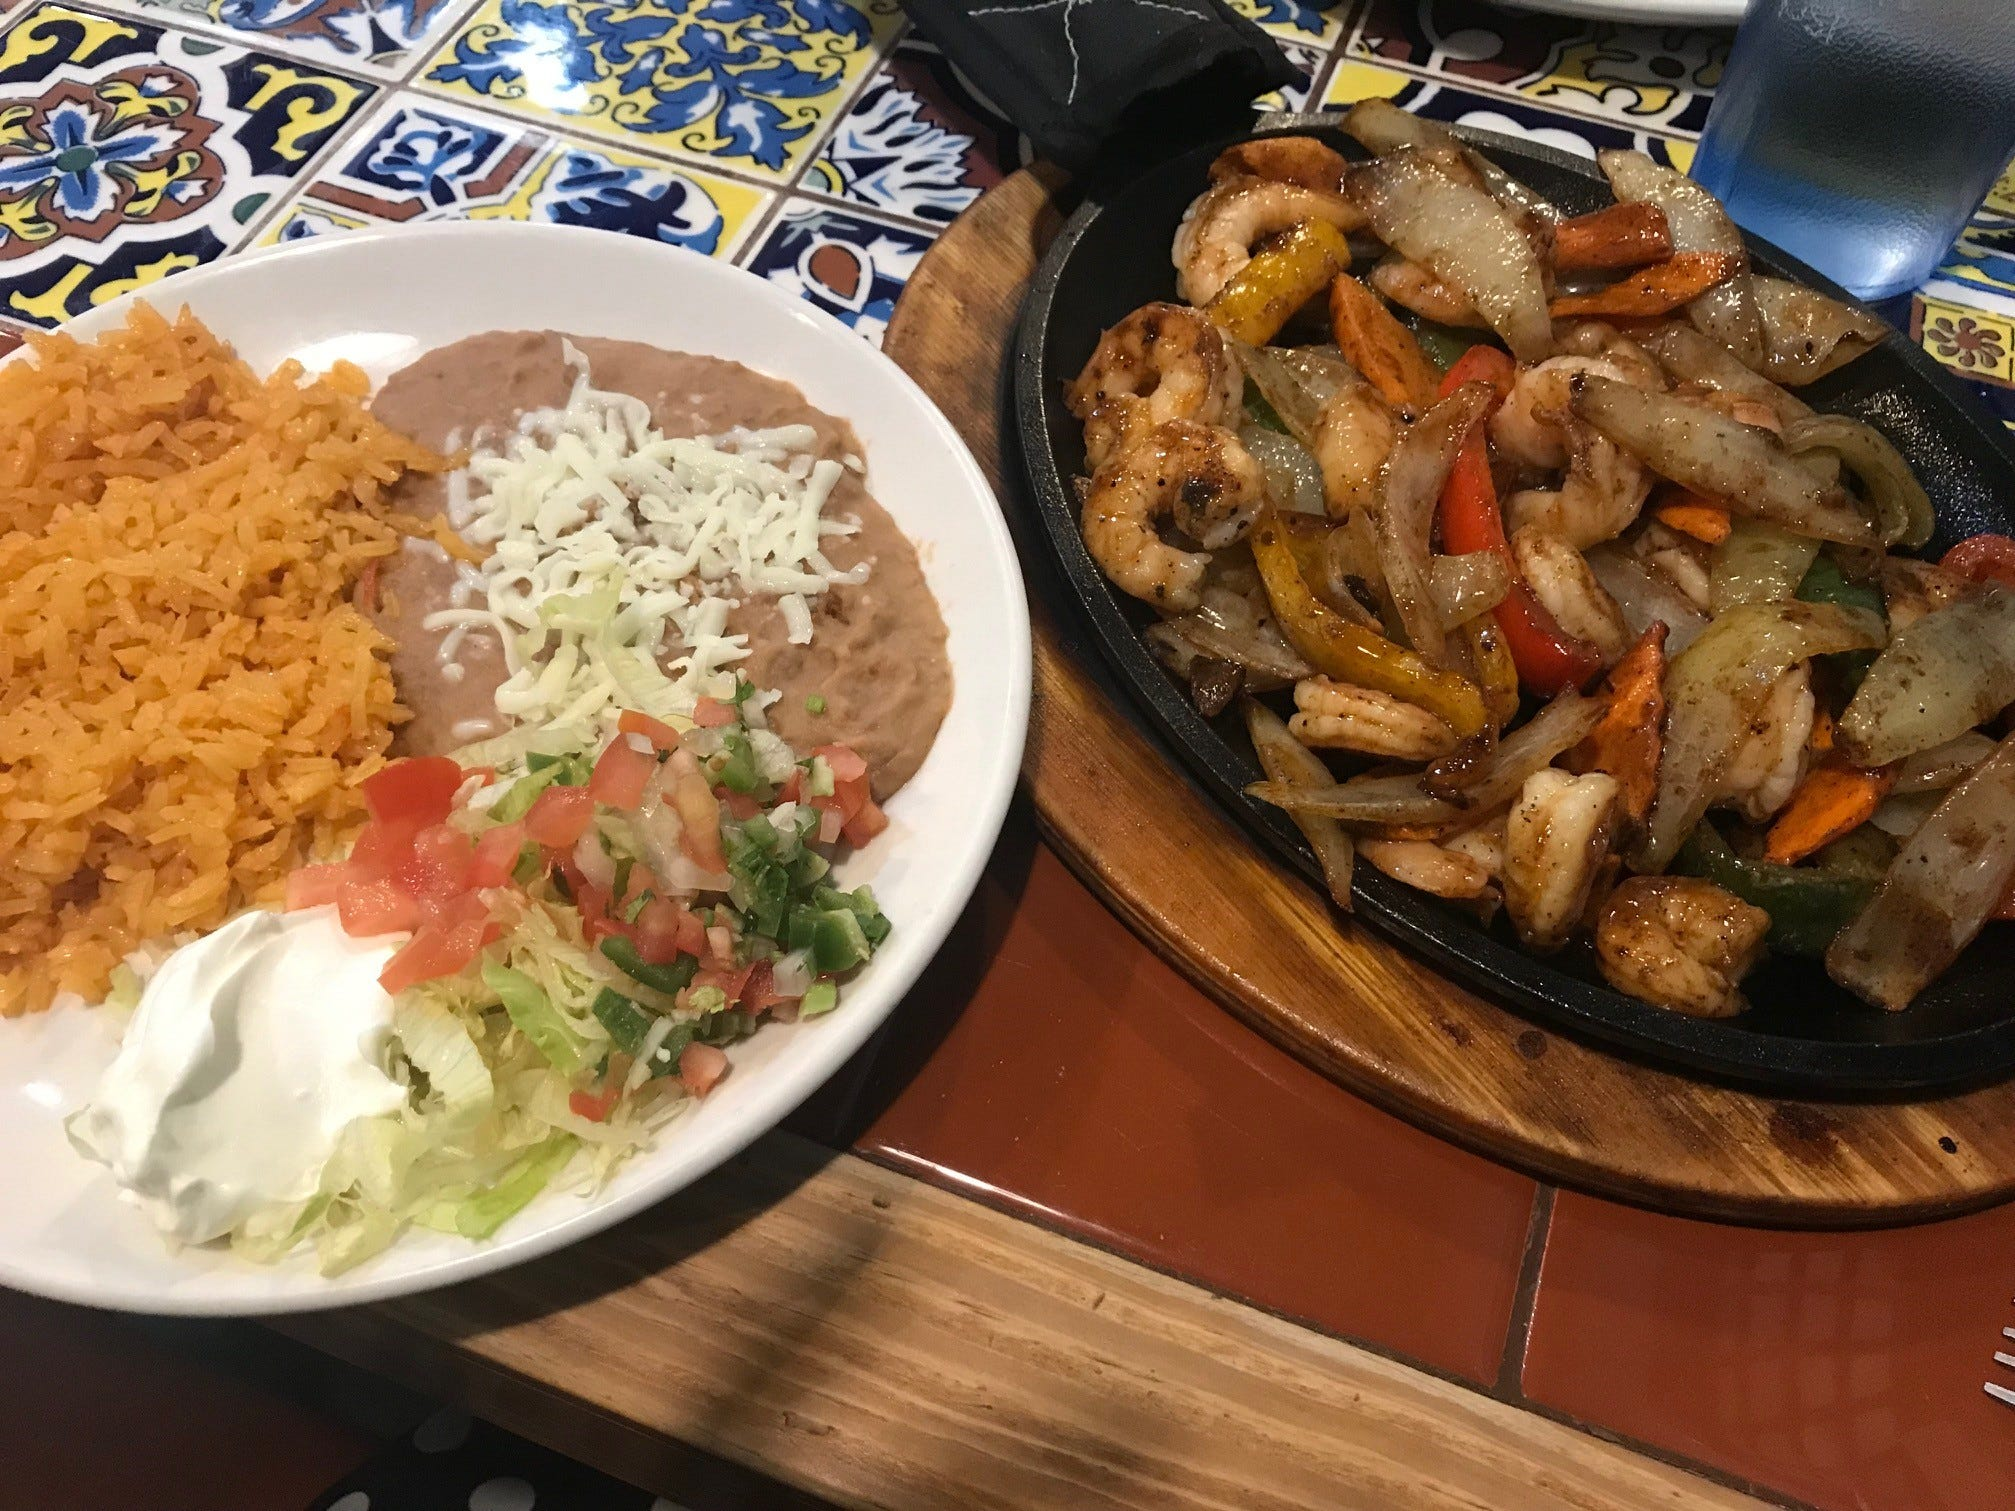 Marina Affo's shrimp fajitas during lunch on Tuesday, Dec. 4 at 2 Amigos.